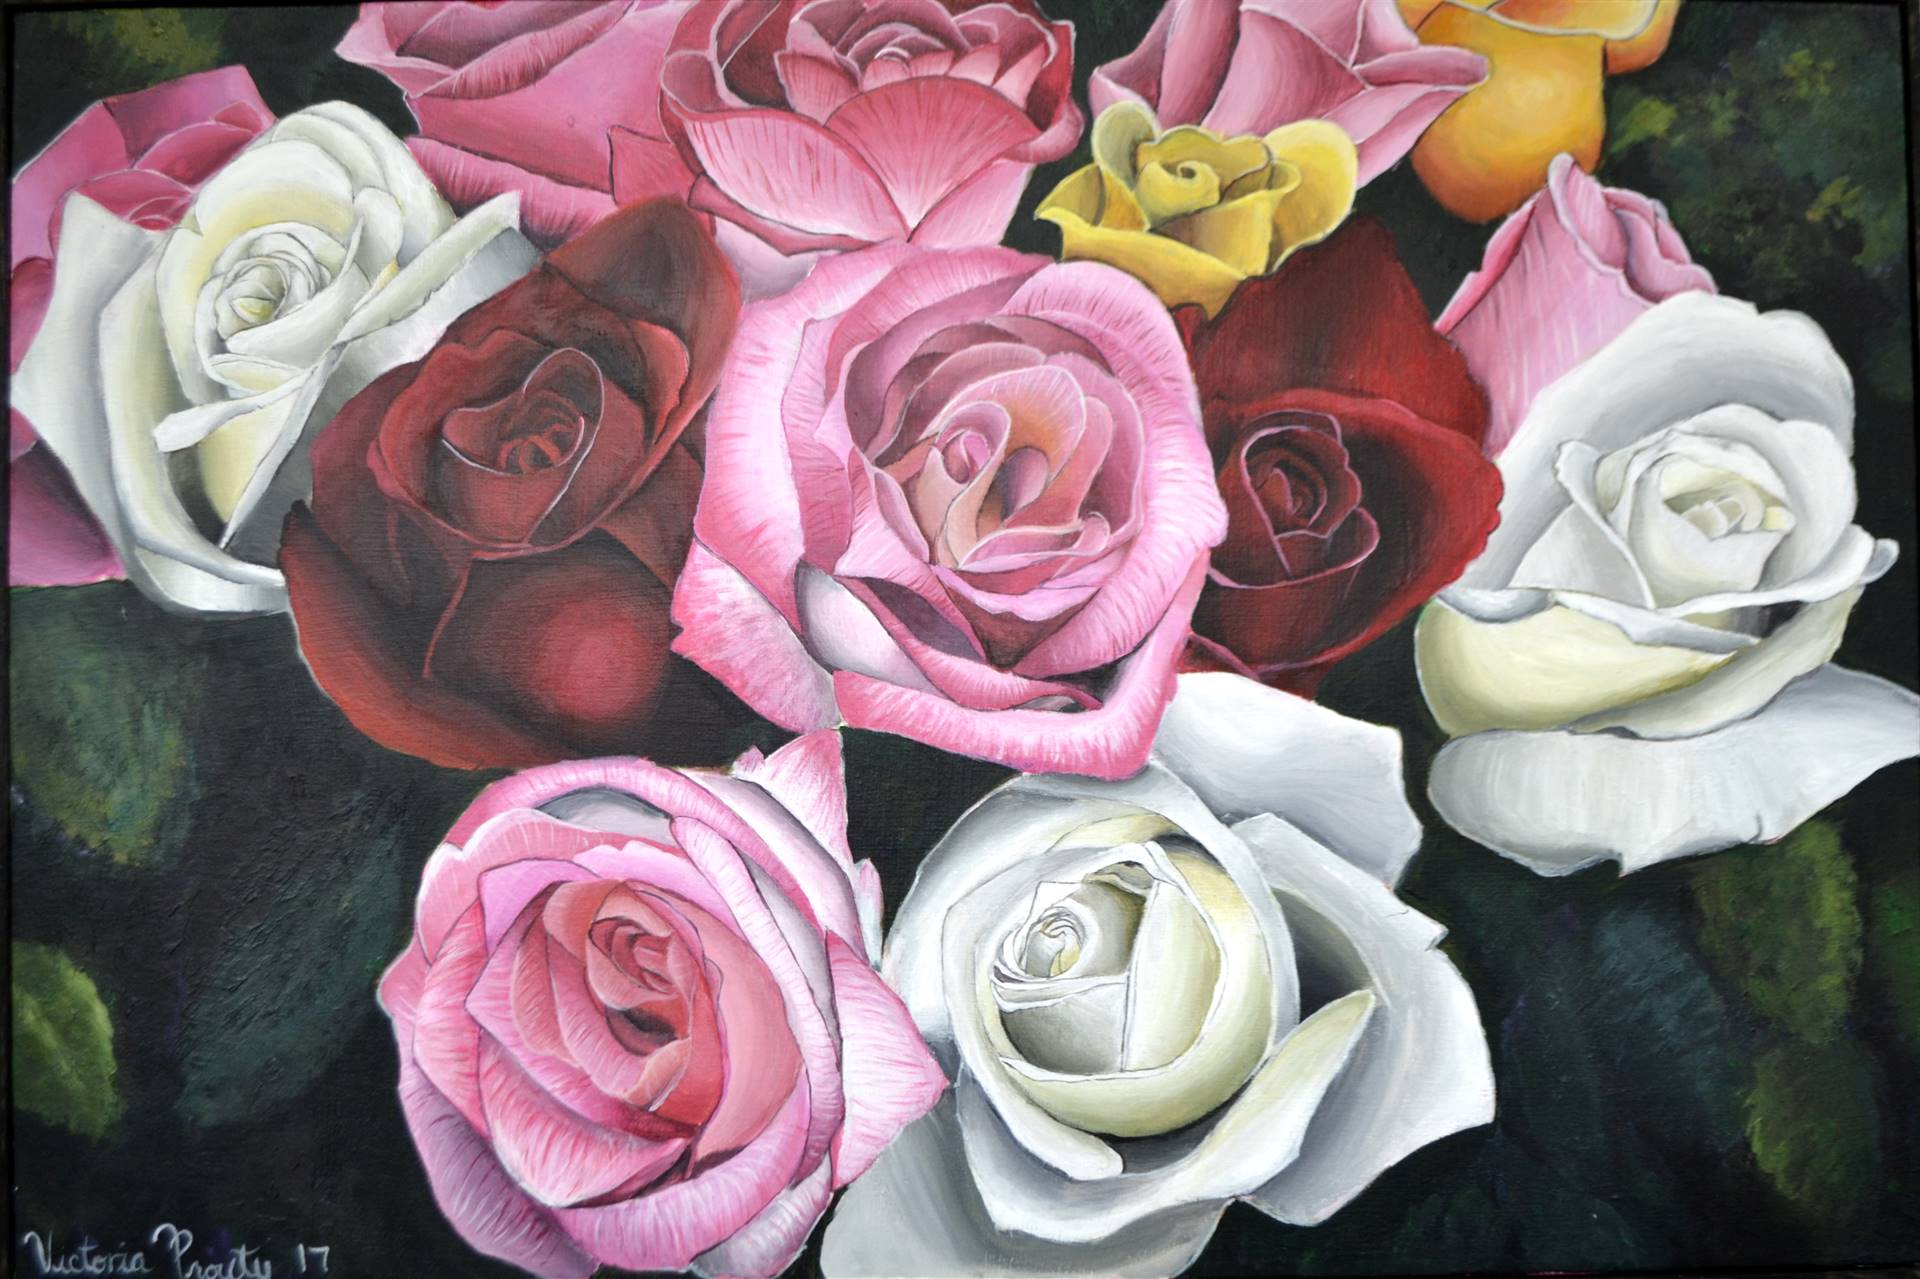 Victoria Prouty, Roses, acrylic on canvas, 24 x 36, 2017